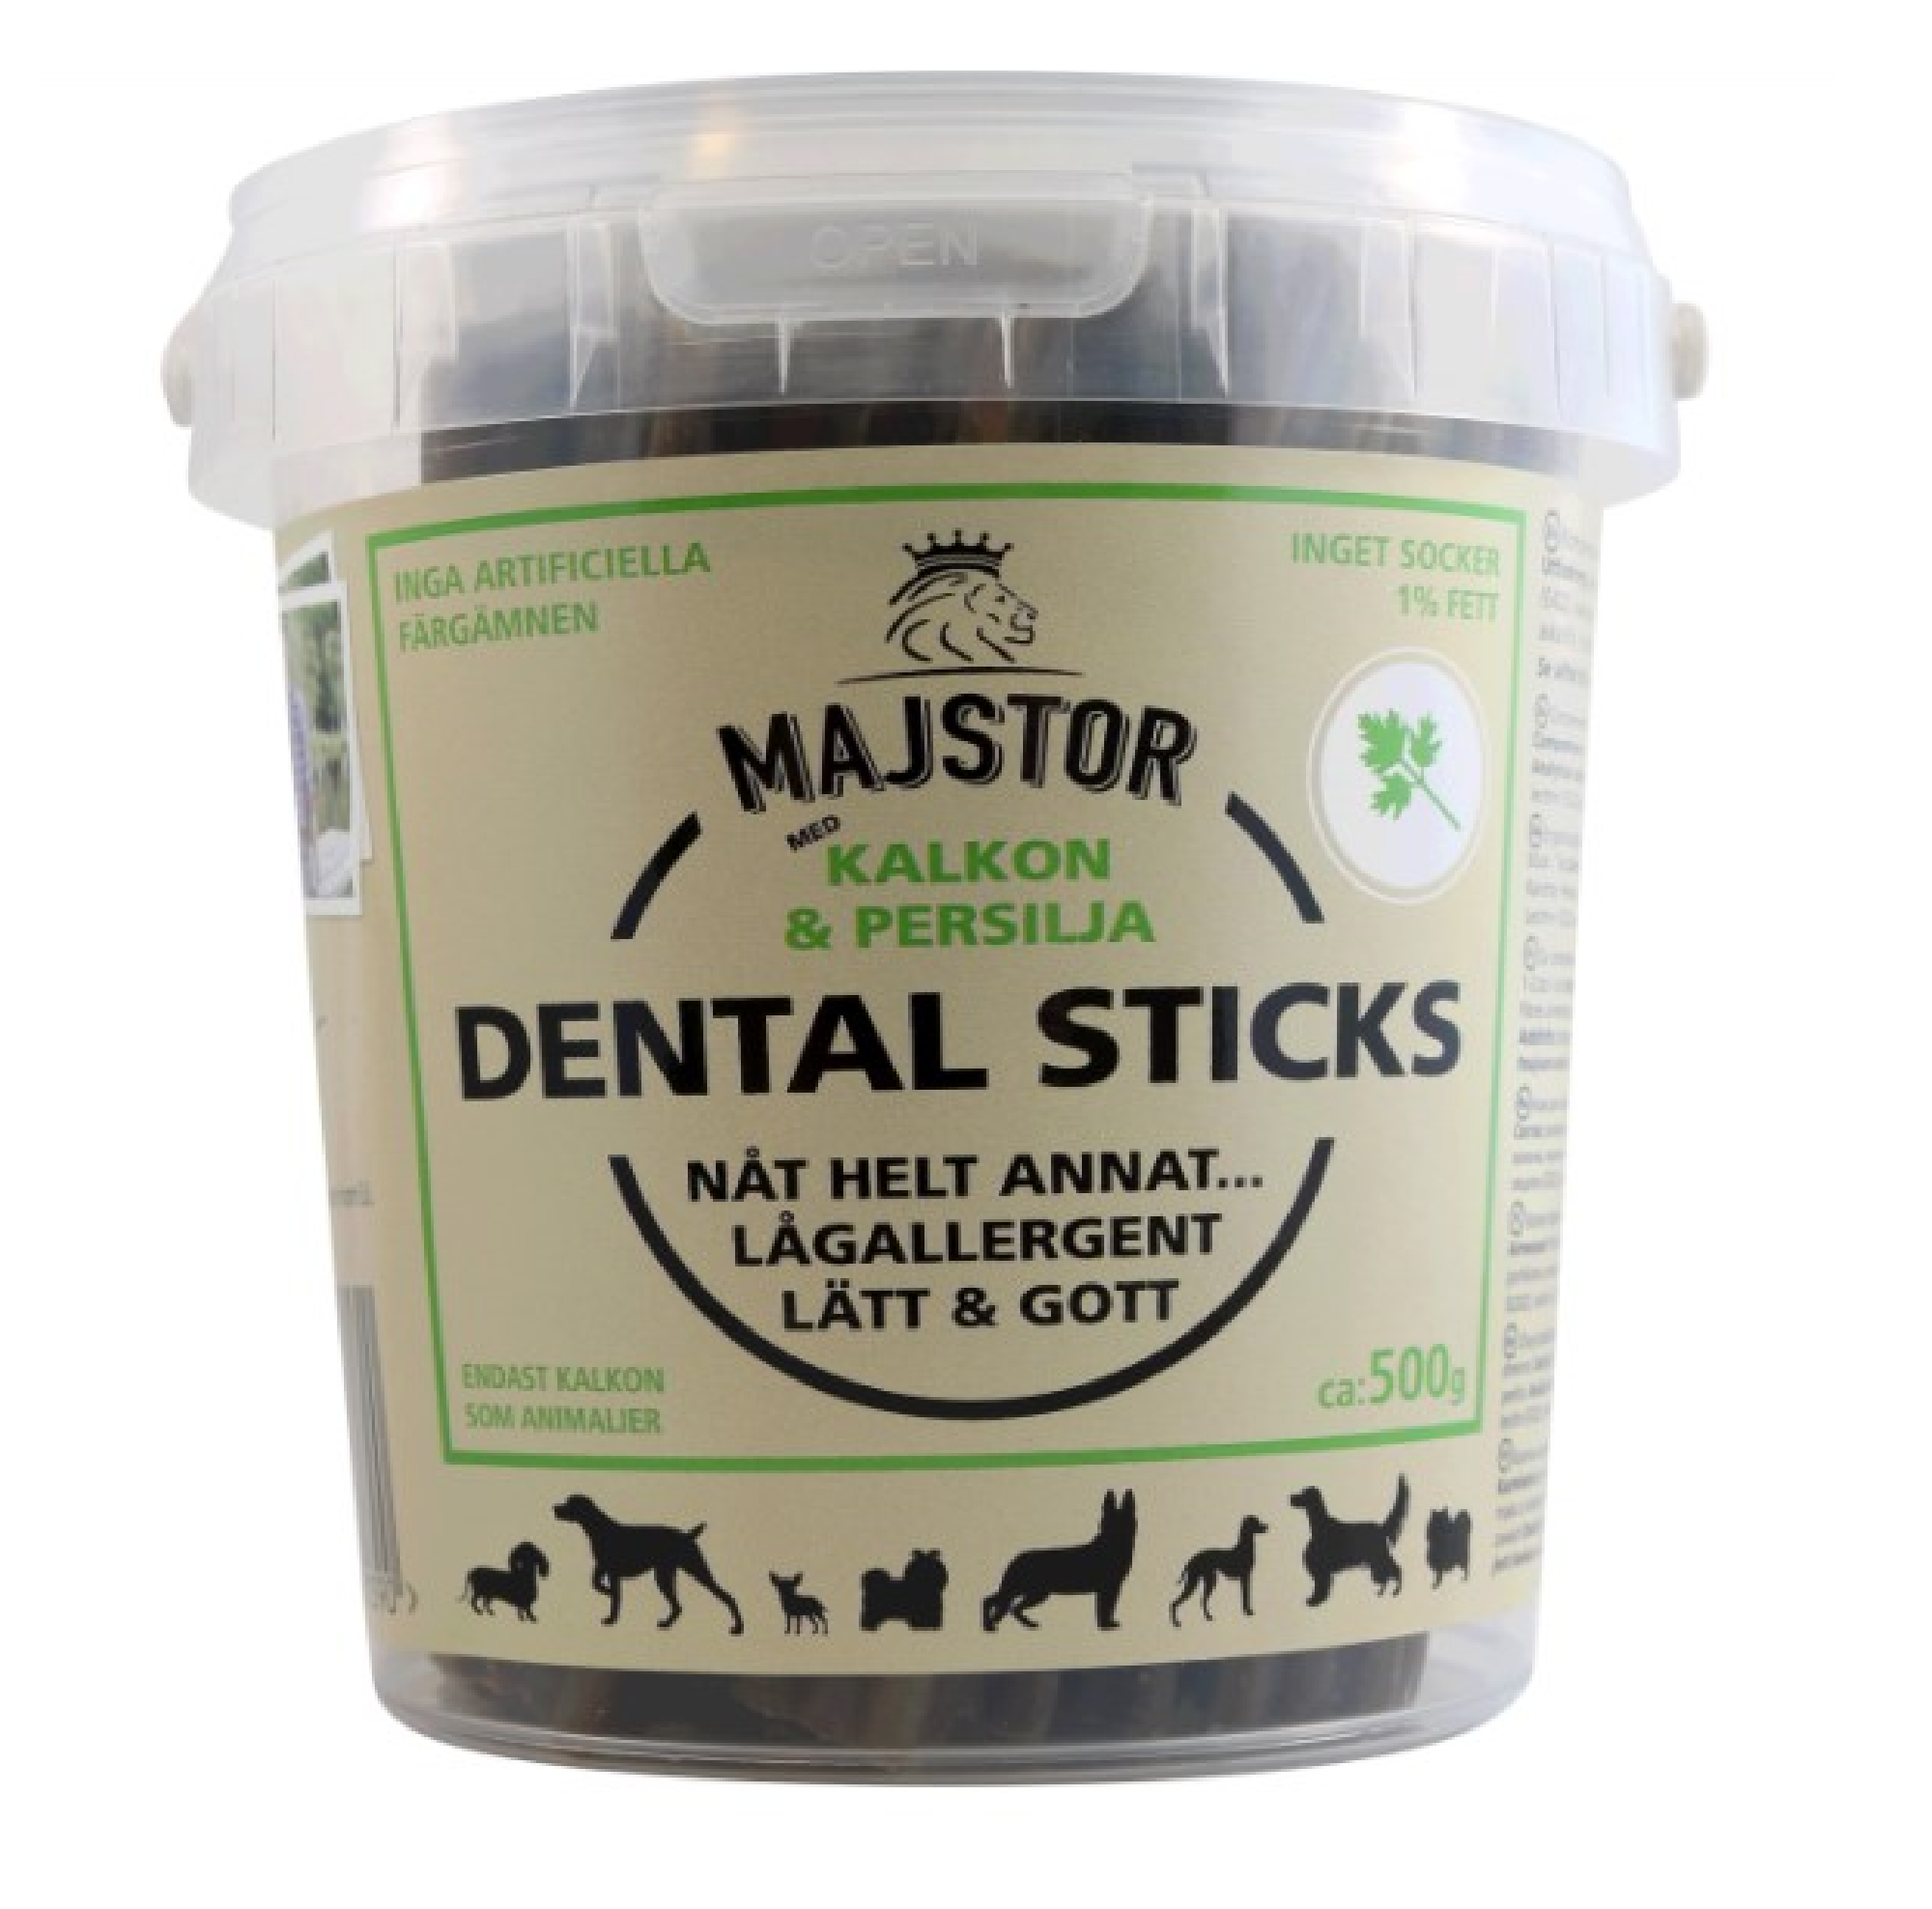 Majstor Dental Sticks Kalkon & Persilja